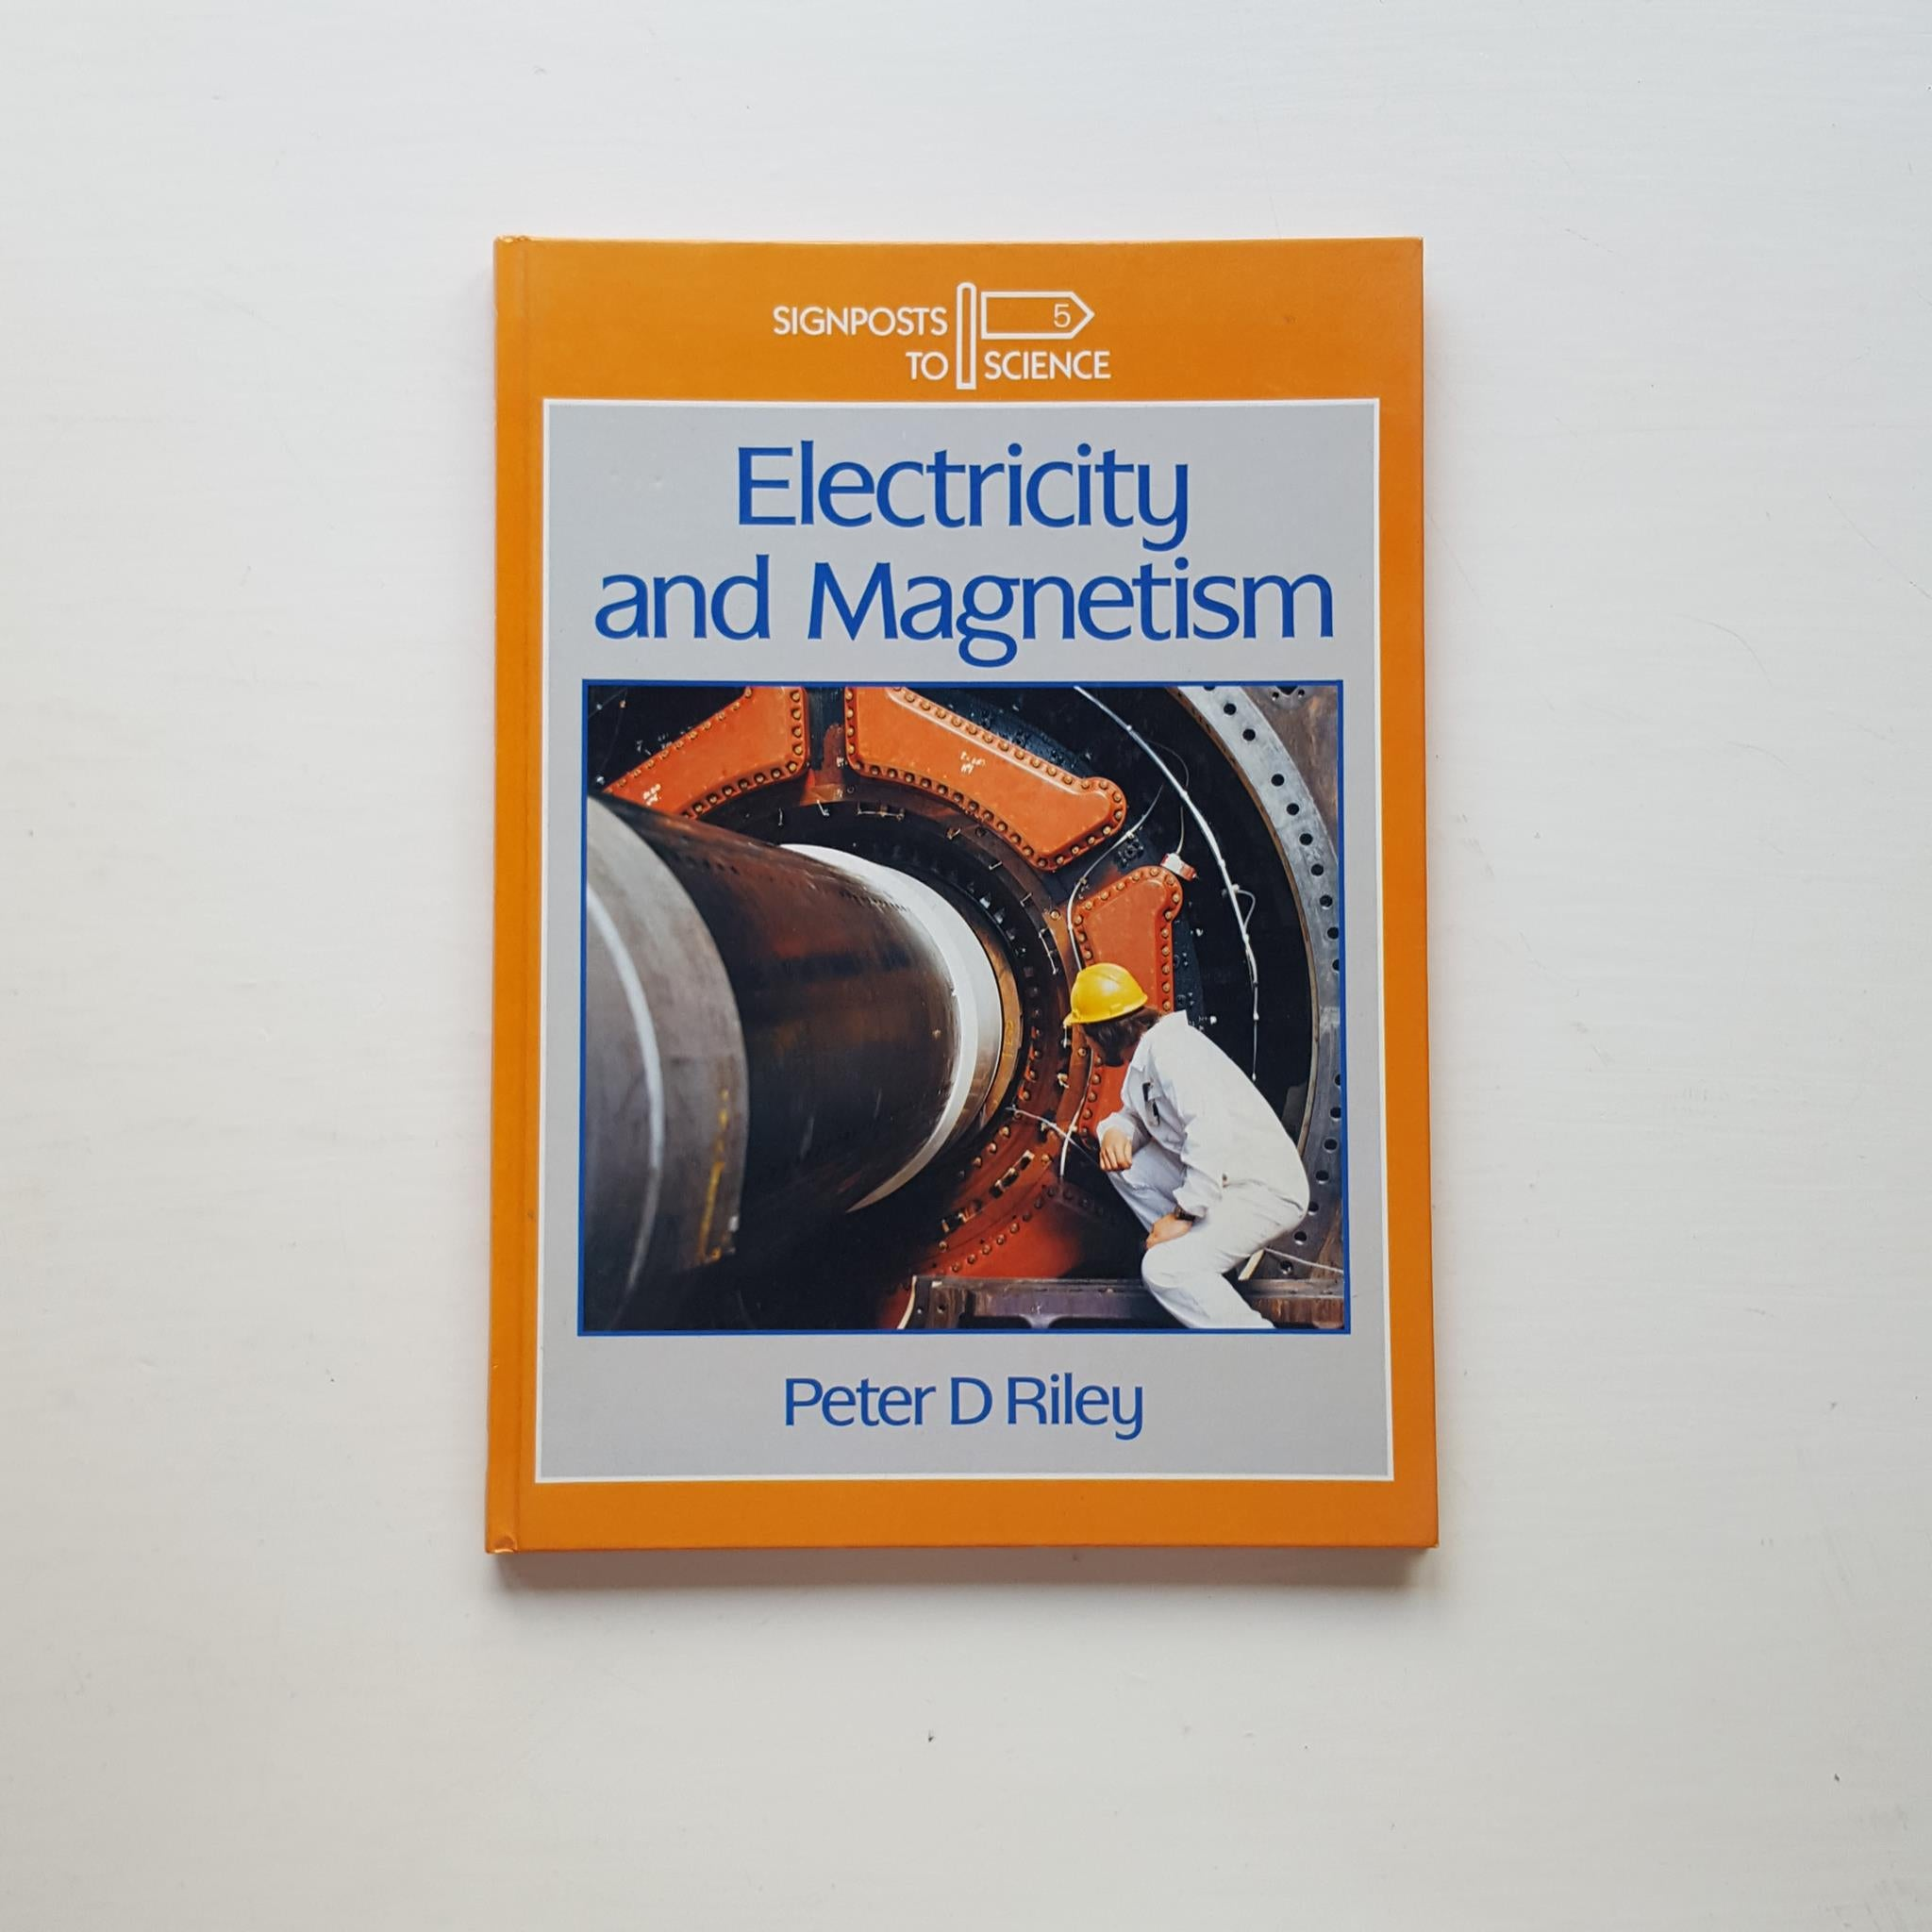 Electricity and Magnetism by Peter D Riley